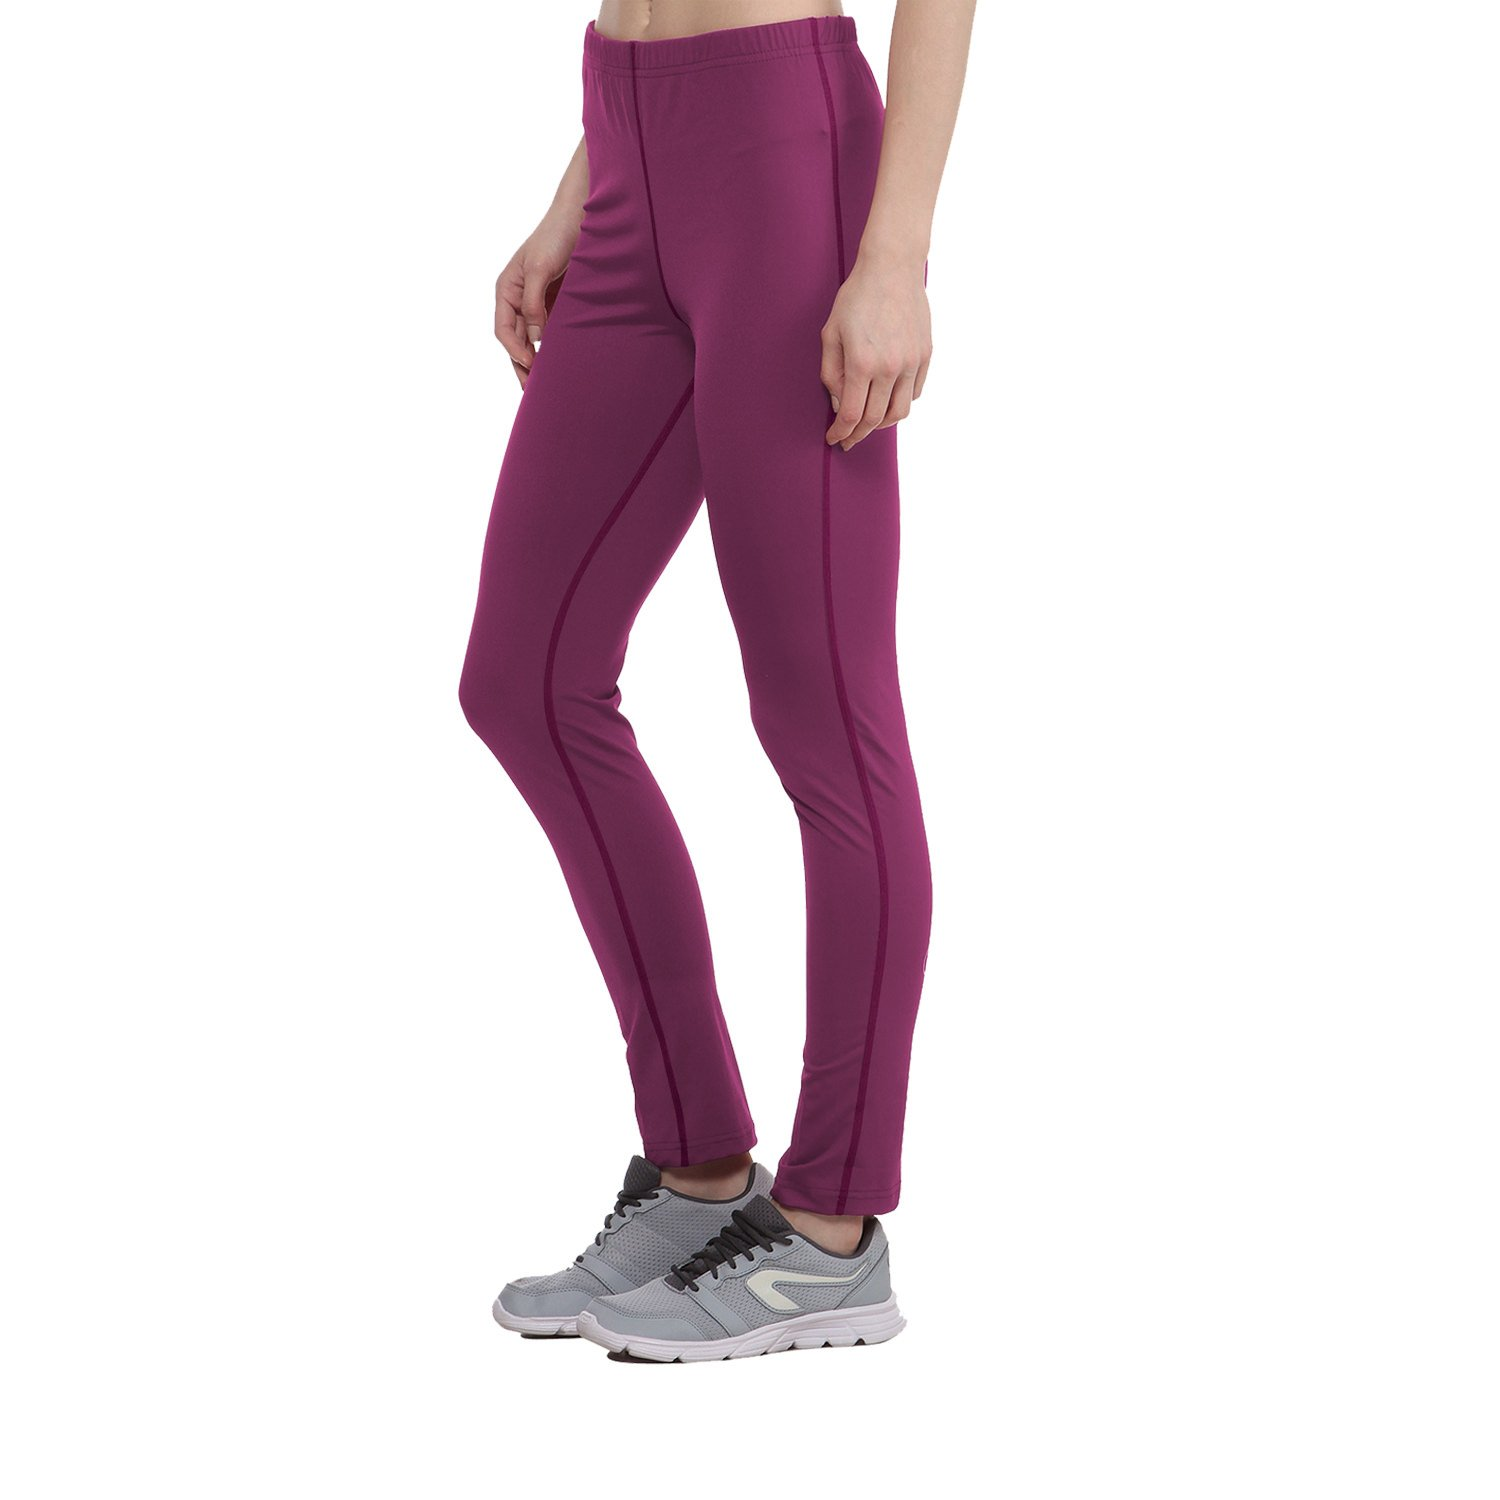 a60a665953e79 CHKOKKO Polyester Women Solid Yoga Sports Stretchable High Waist Track Yoga  Pant in Magenta Size XL: Amazon.in: Clothing & Accessories